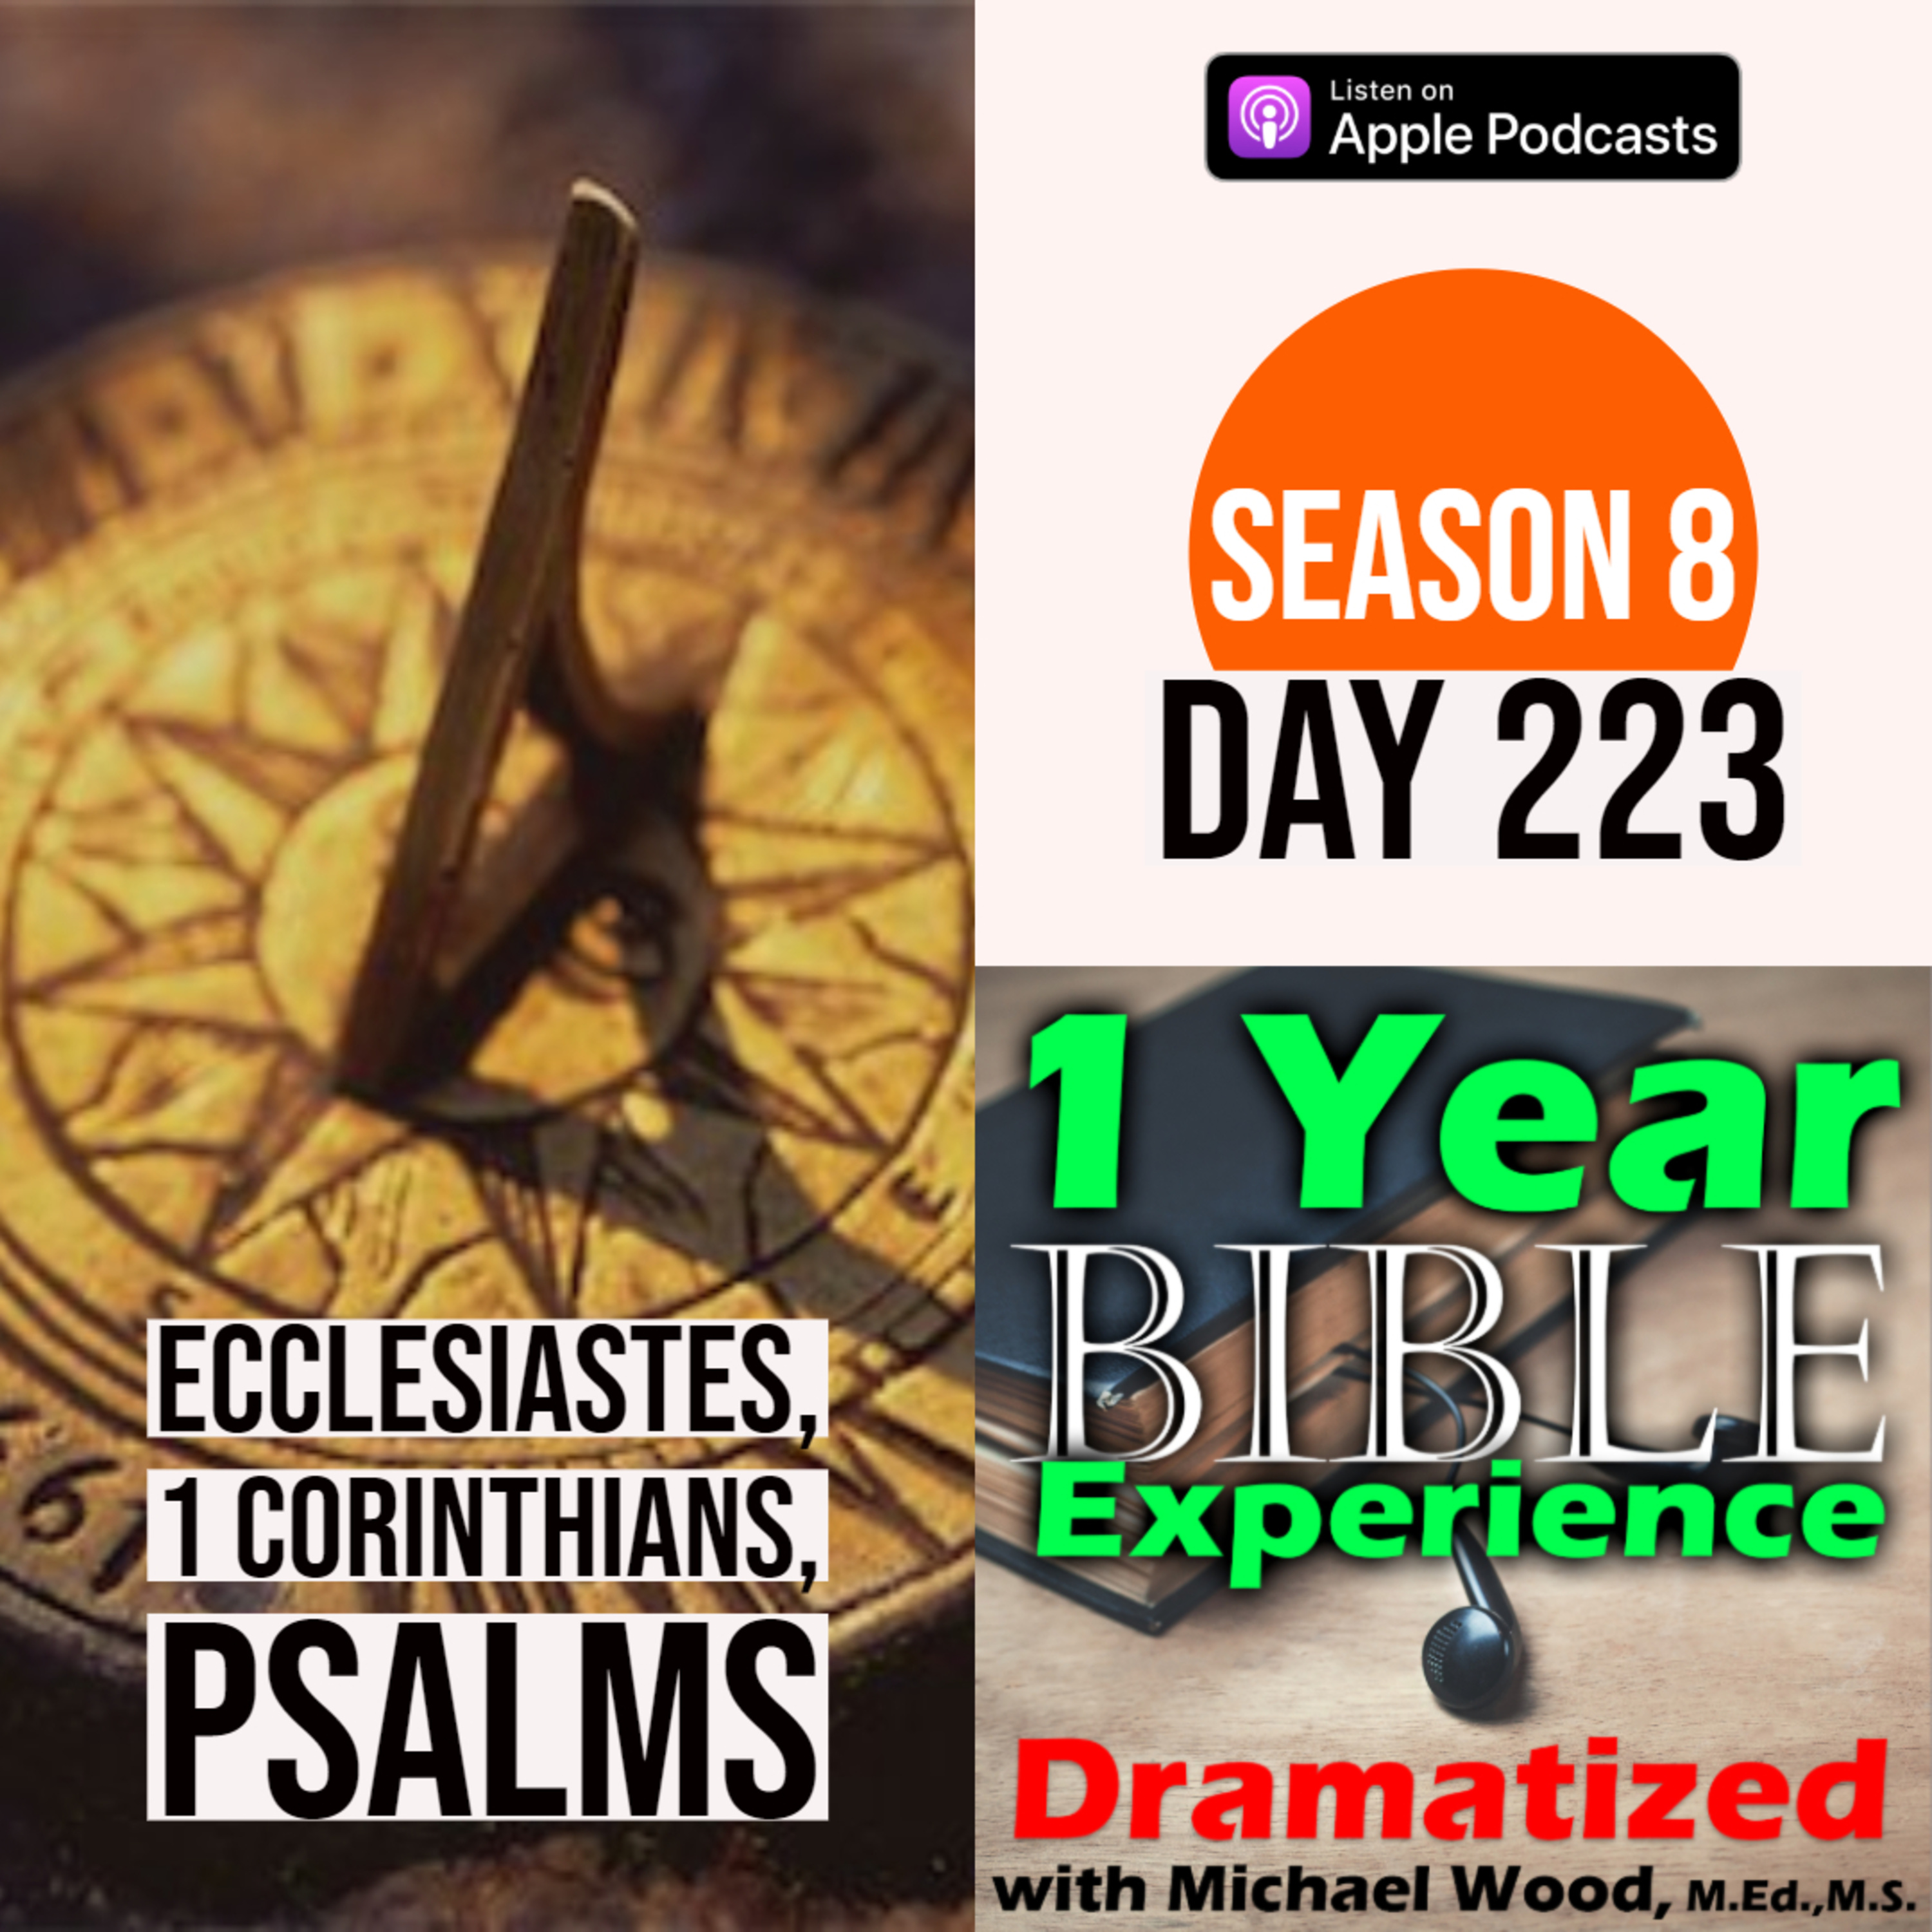 Audio Bible Day 223 | Solomon reflects on the meaning of life | 1 Corinthians 7: Marriage vs Celibacy